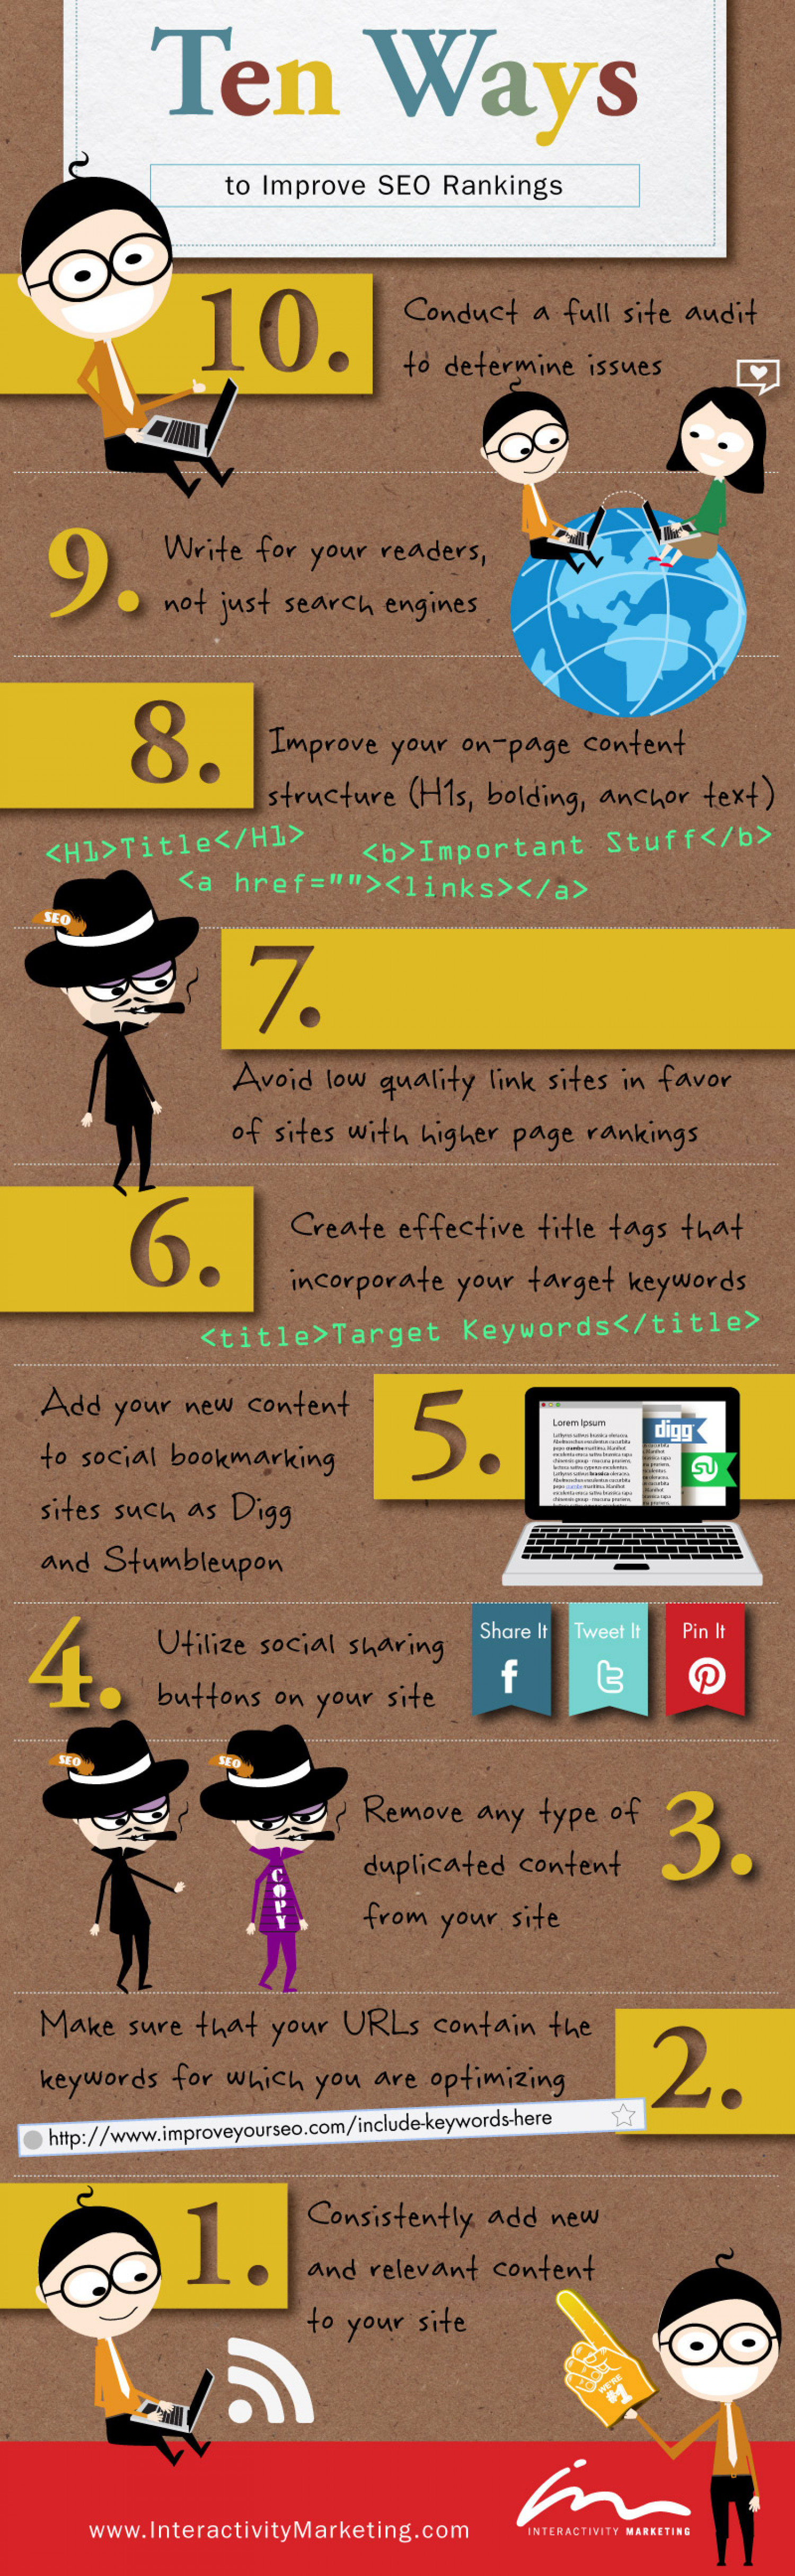 Ten Ways to Improve SEO Rankings Infographic